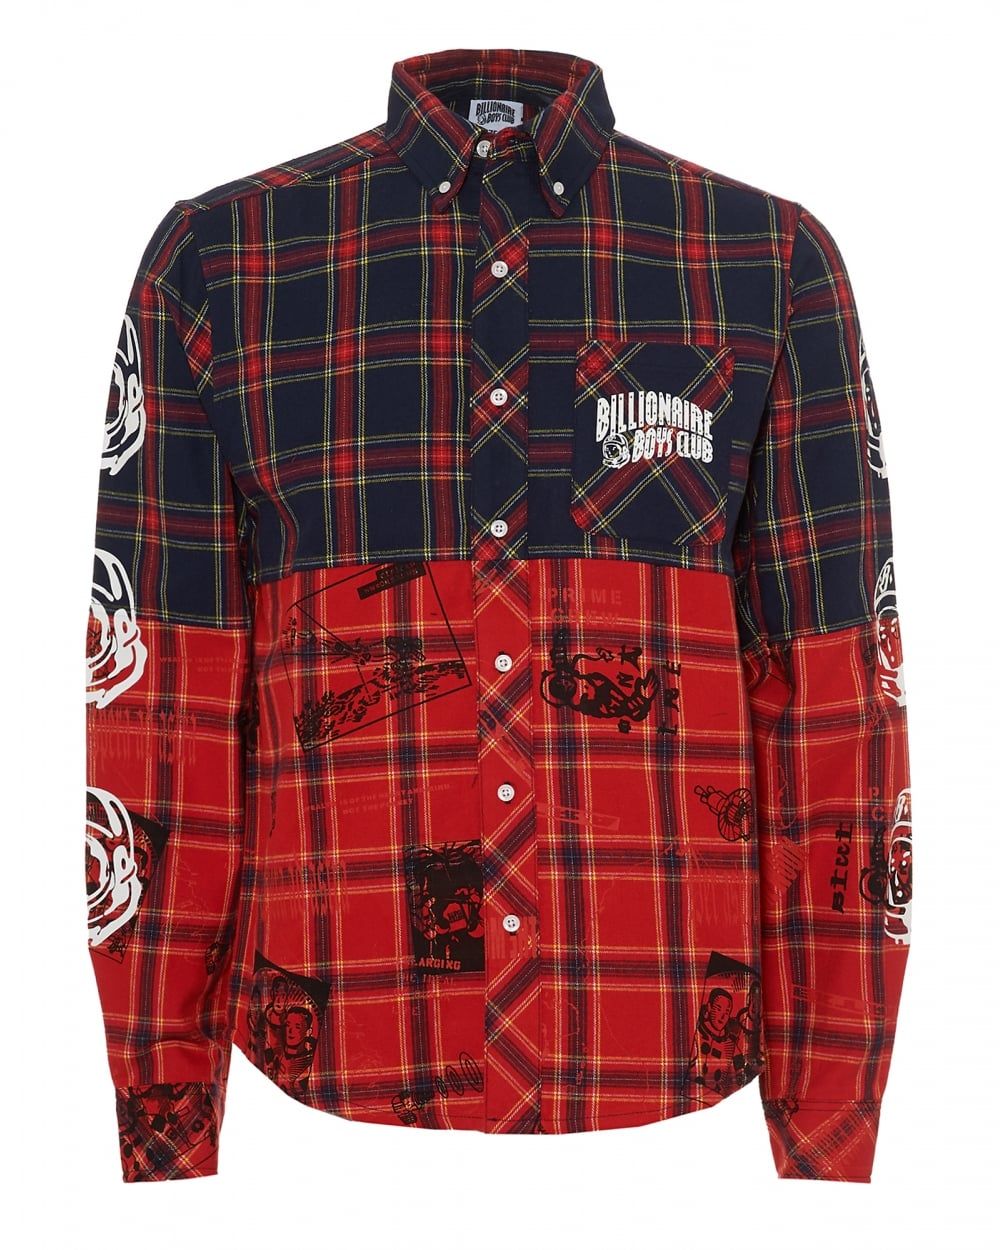 classic collared button front shirt - Blue Billionaire Boys Club Cheap Sale Fashionable To Buy Quality Free Shipping Low Price OaOkLuR